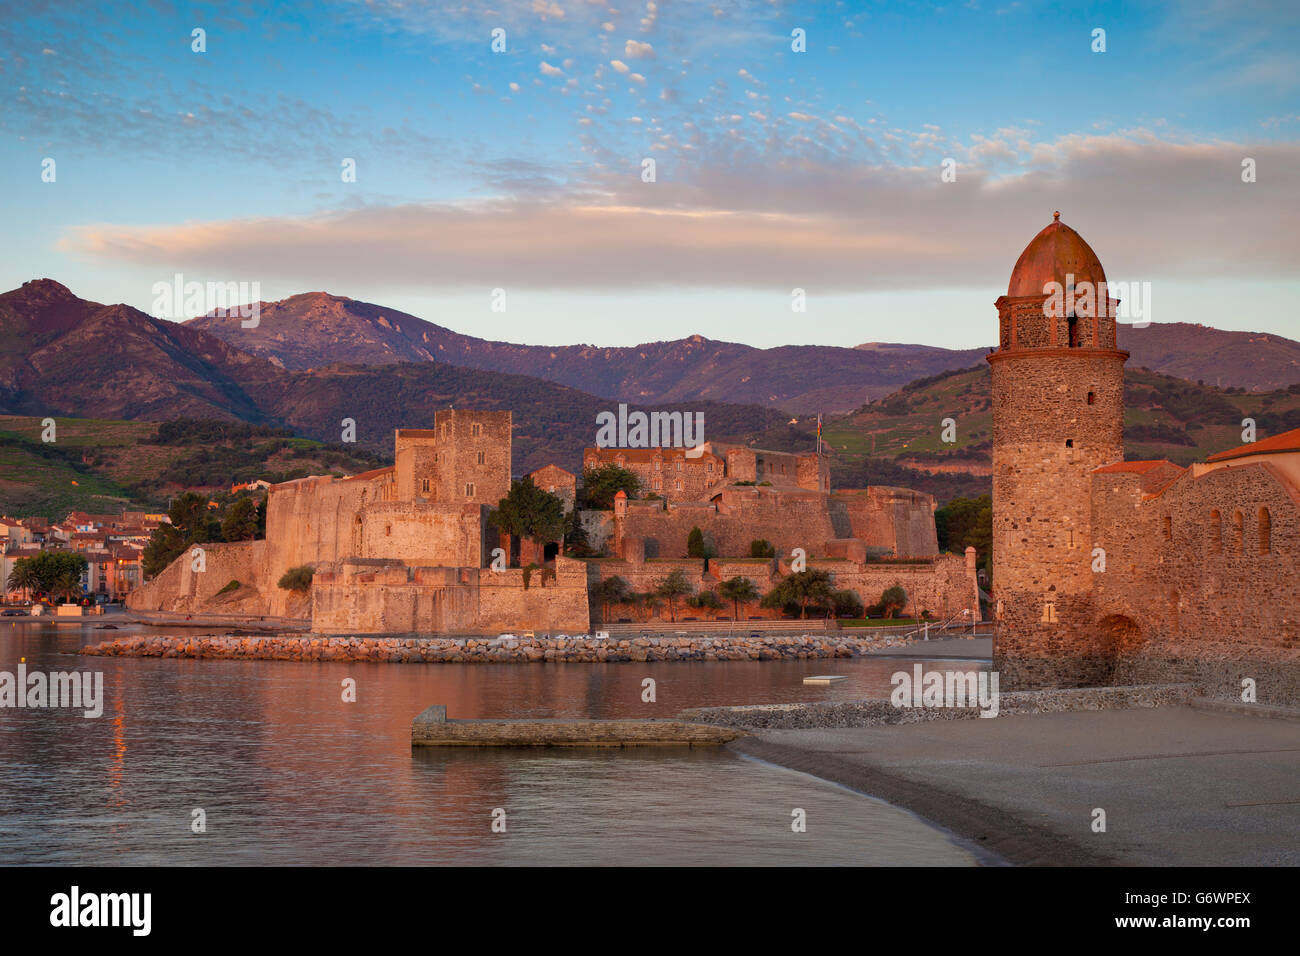 First light of dawn over town of Collioure, Pyrenees-Orientales, Languedoc-Roussillon, France - Stock Image